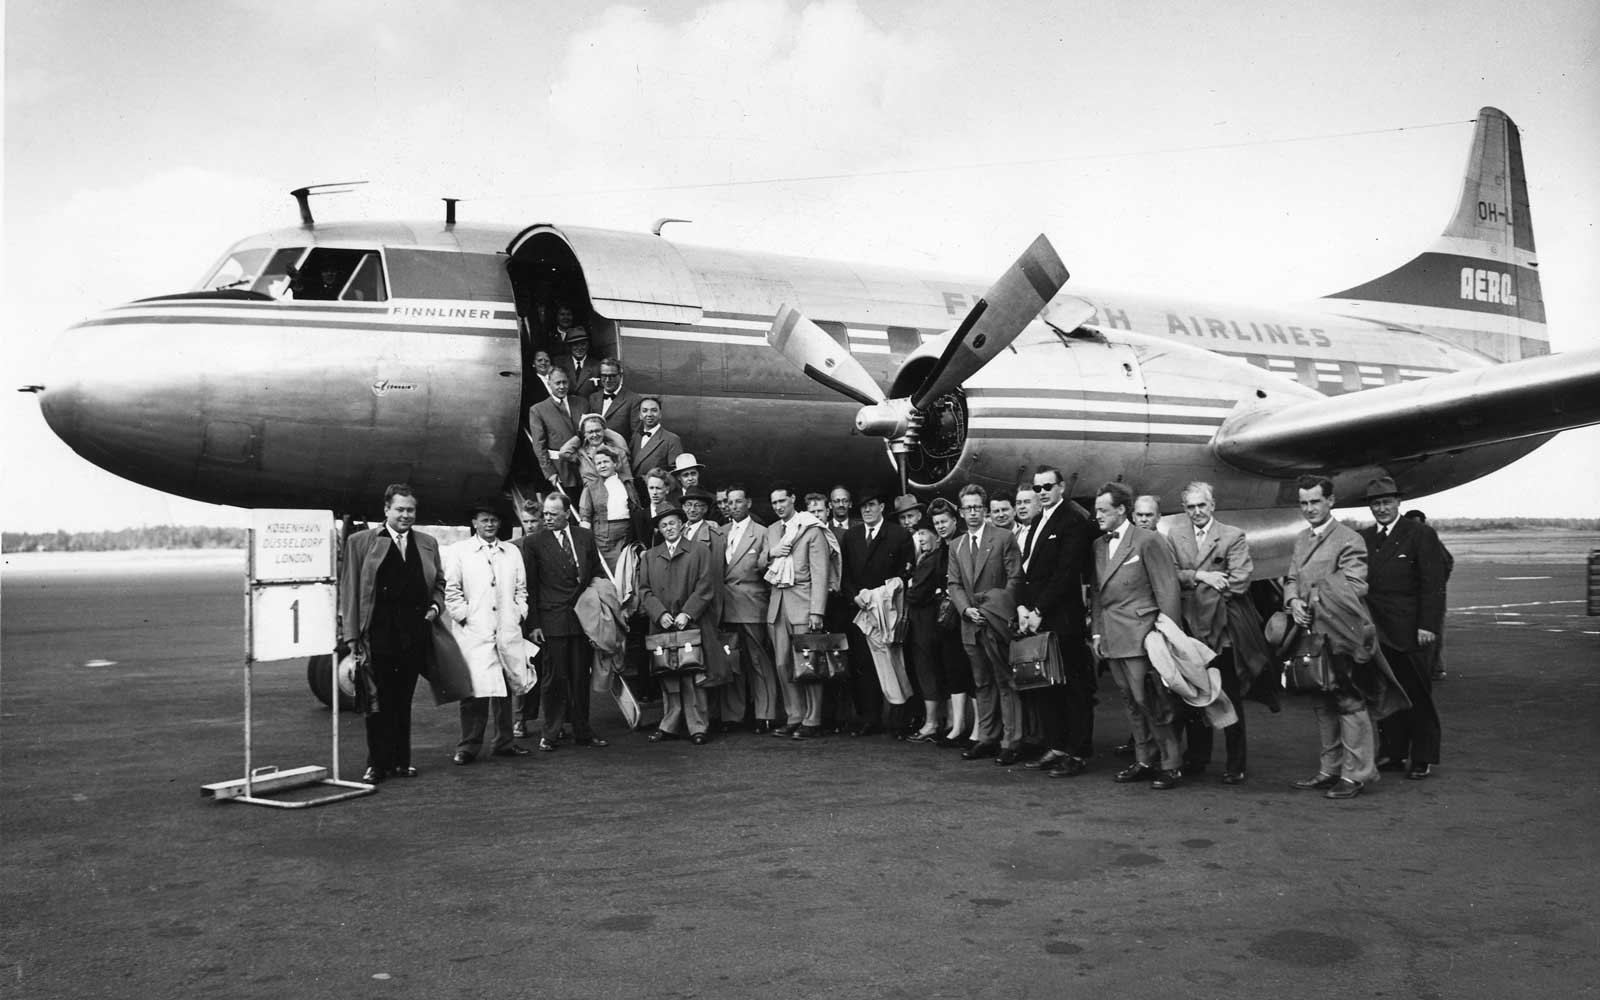 A Finnair plane with passengers in 1954